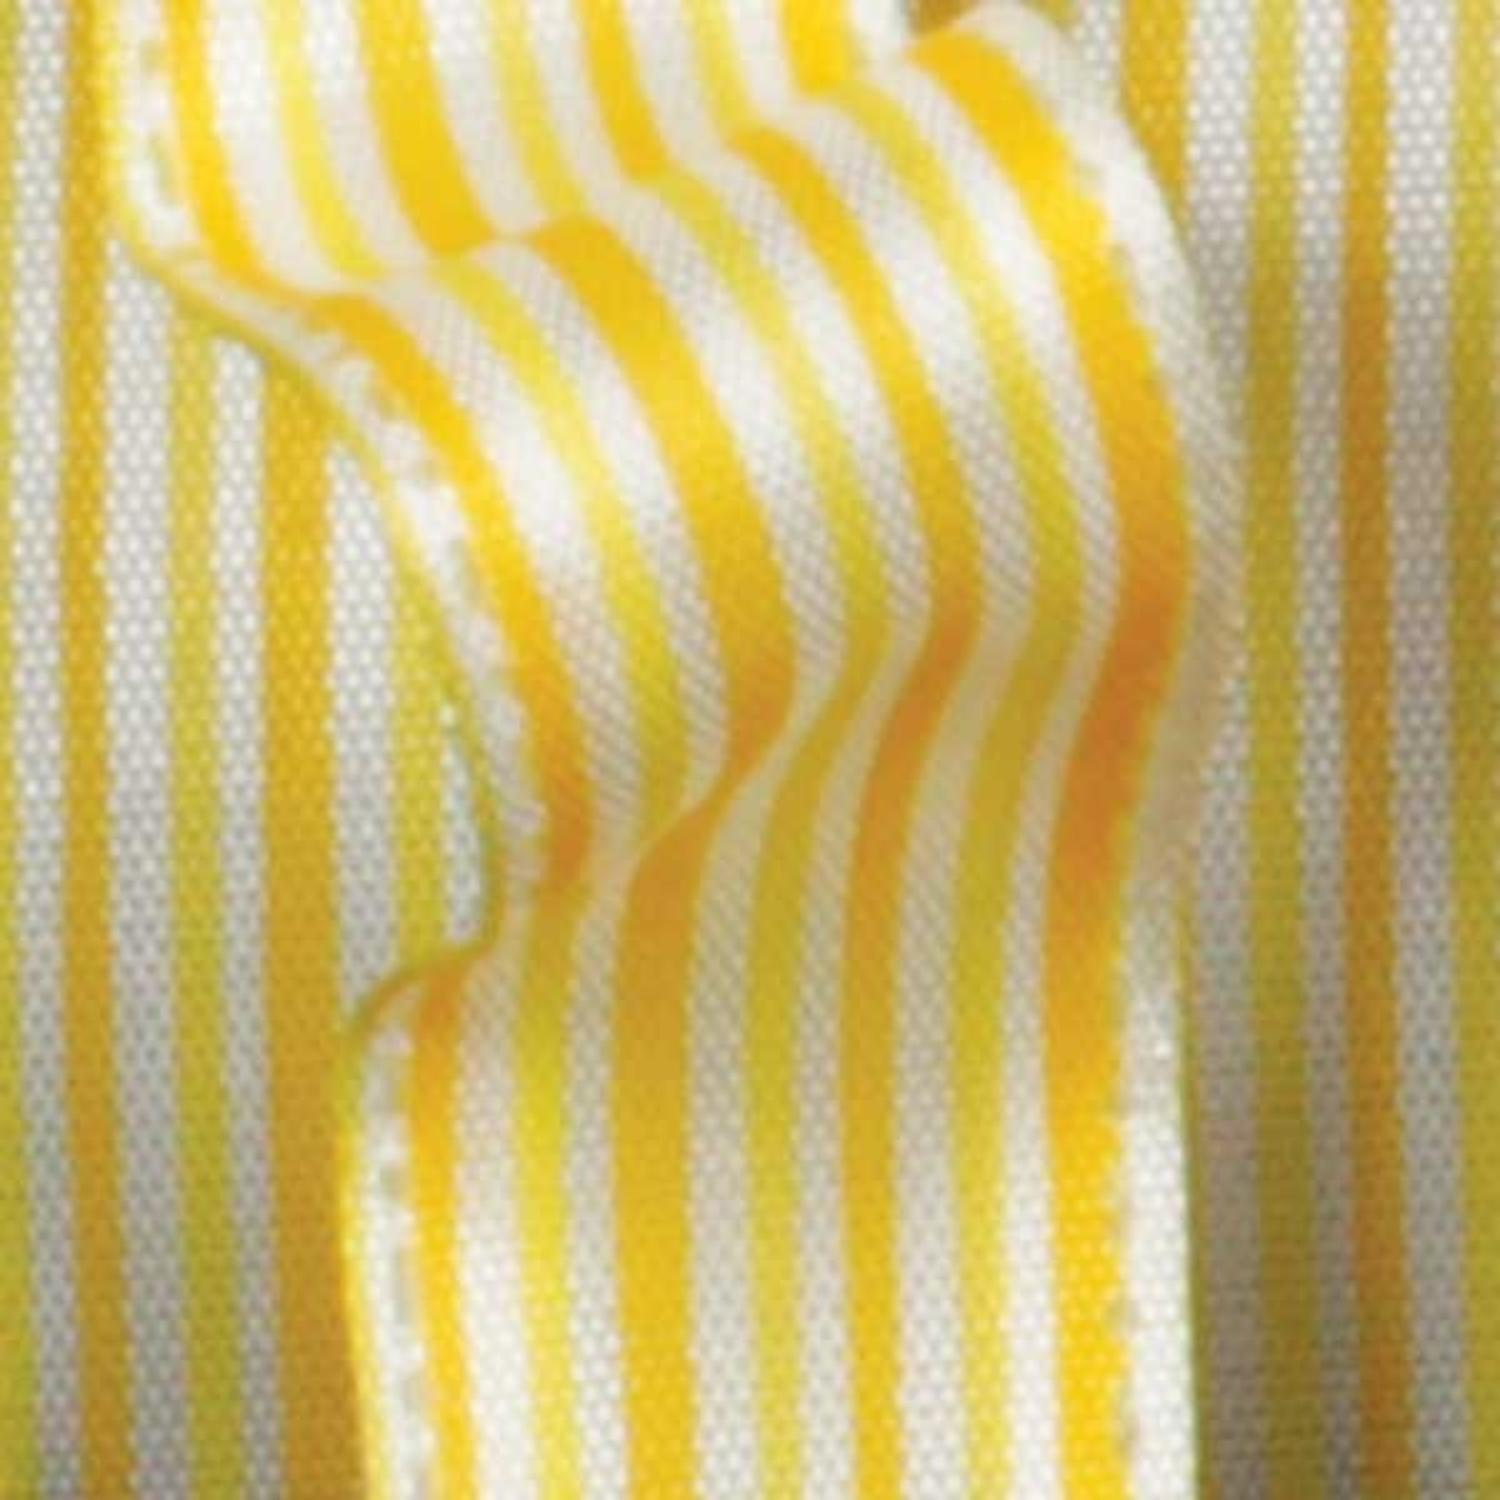 "Ribs of Yellow and White Thin Striped Wired Craft Ribbon 5/8"" x 60 Yards"